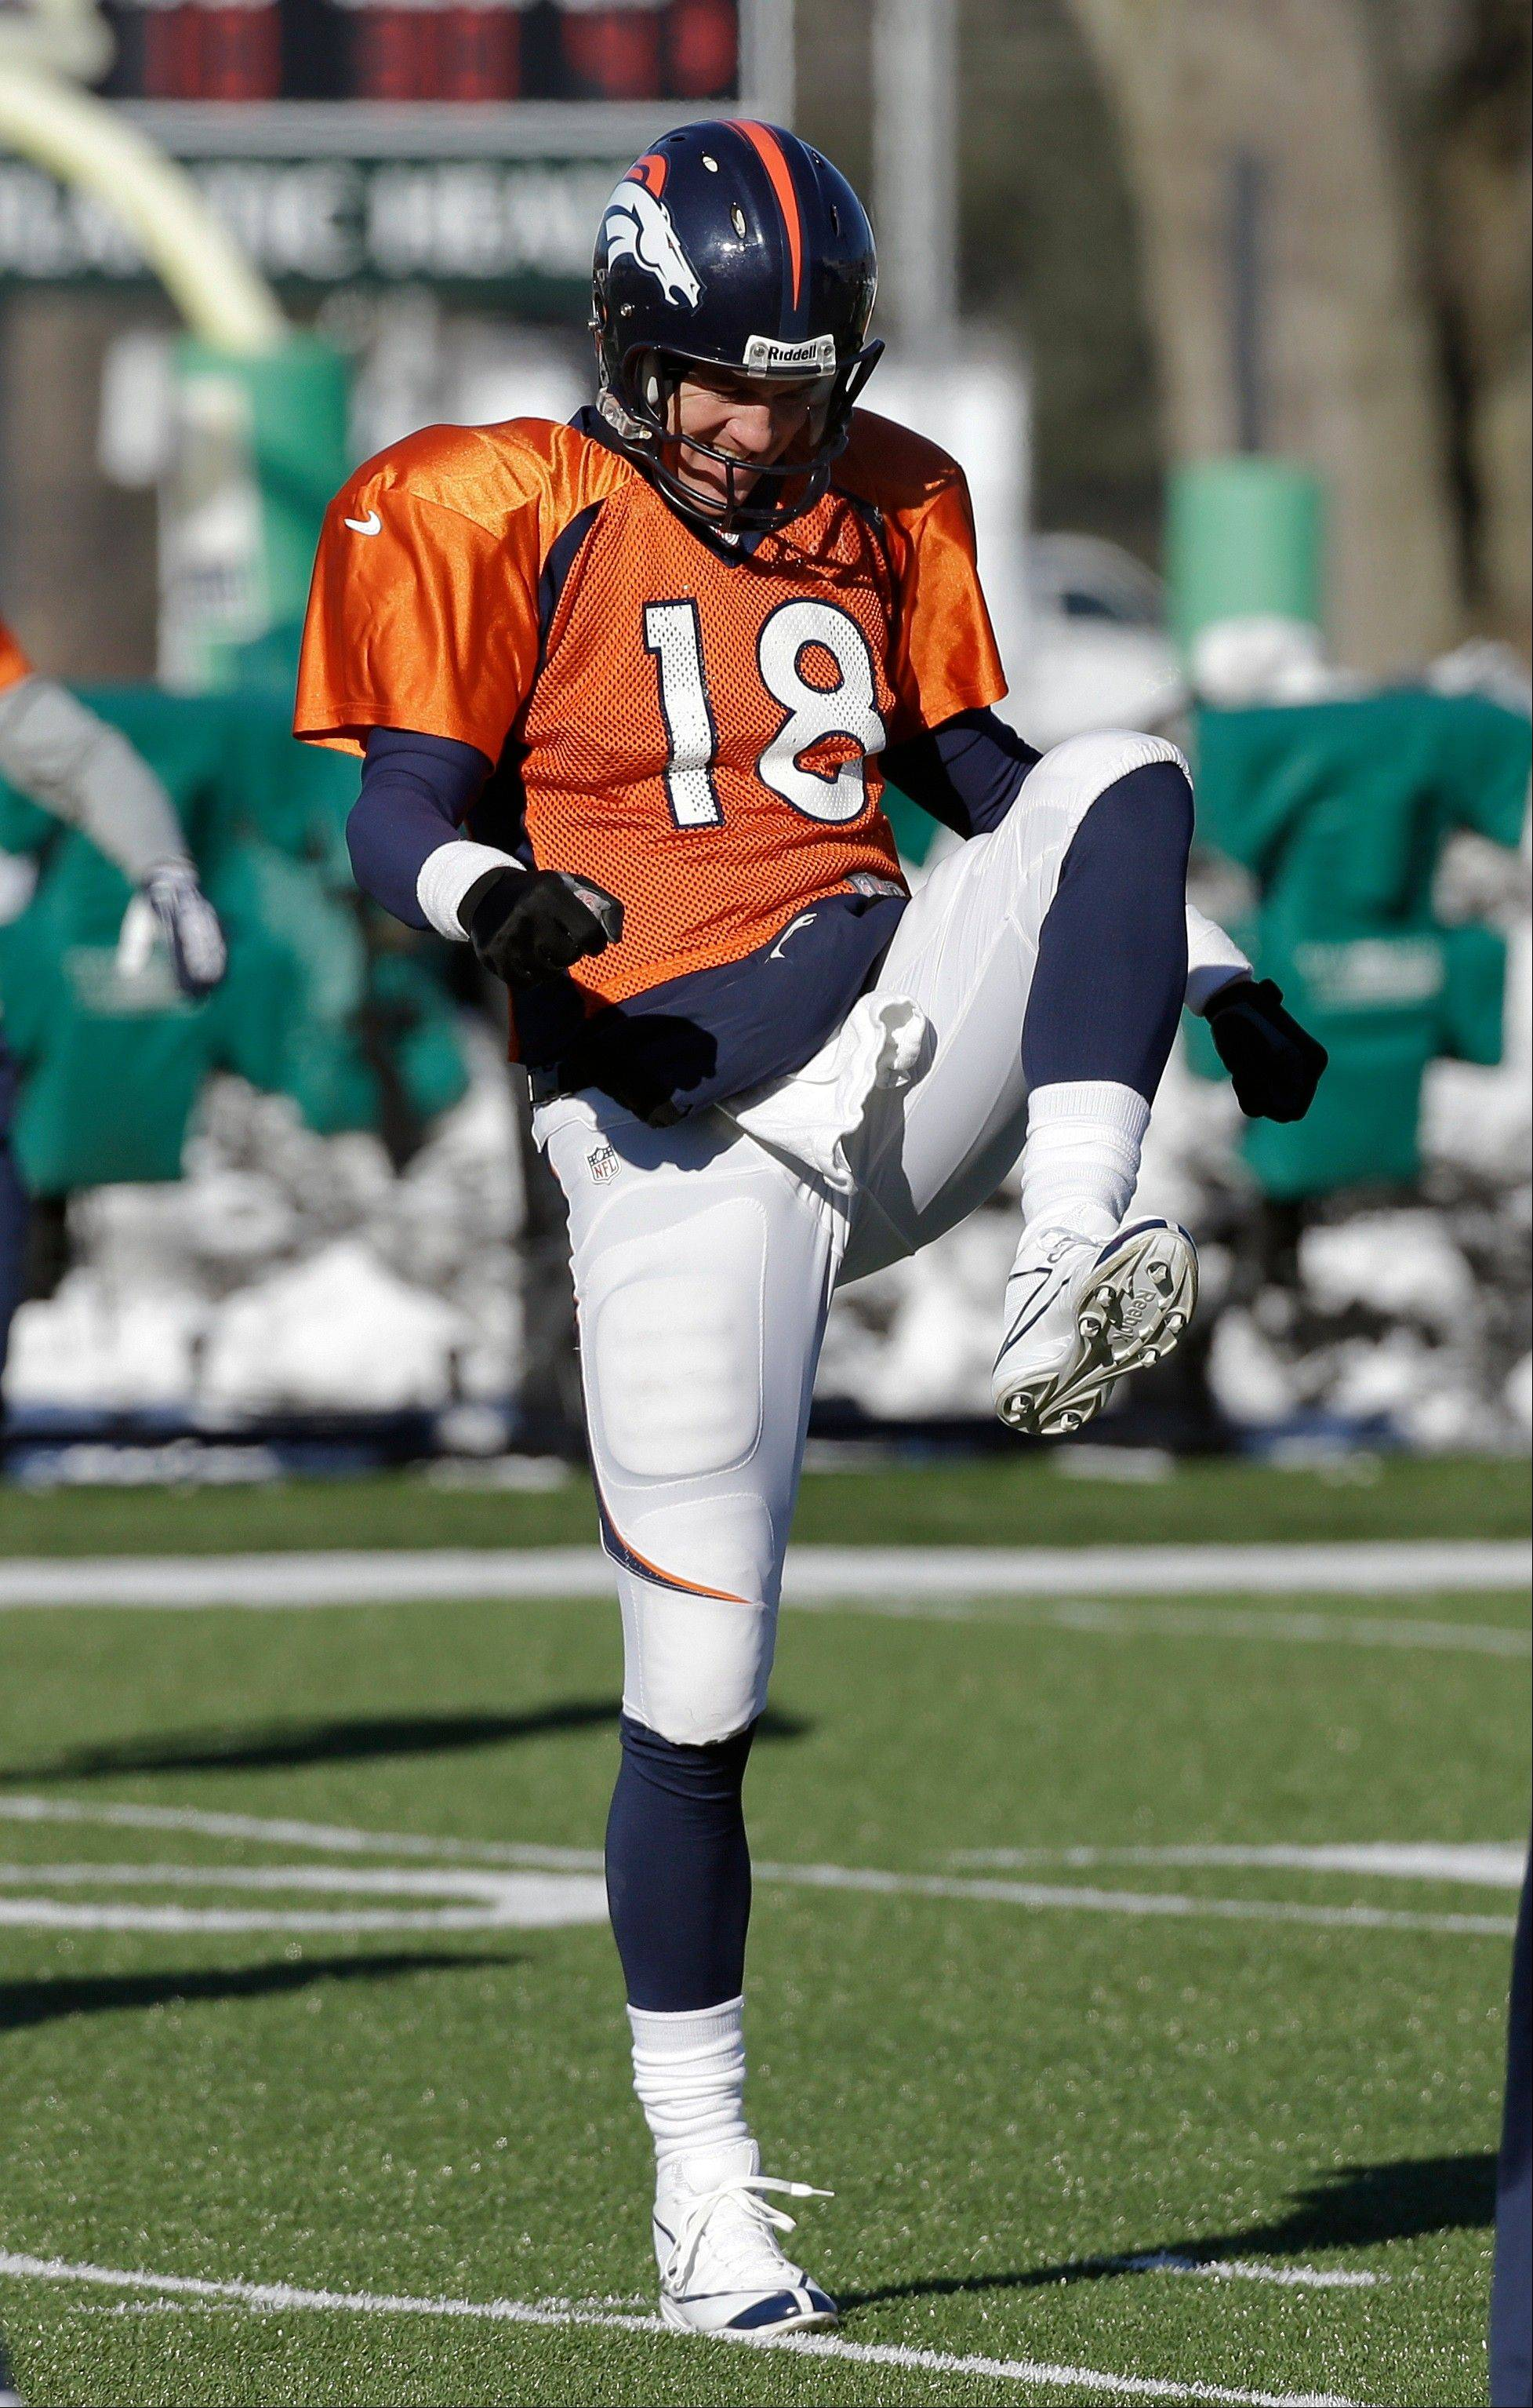 Denver Broncos quarterback Peyton Manning stretches during practice Wednesday, Jan. 29, 2014, in Florham Park, N.J. The Broncos are scheduled to play the Seattle Seahawks in the NFL Super Bowl XLVIII football game Sunday, Feb. 2, in East Rutherford, N.J.